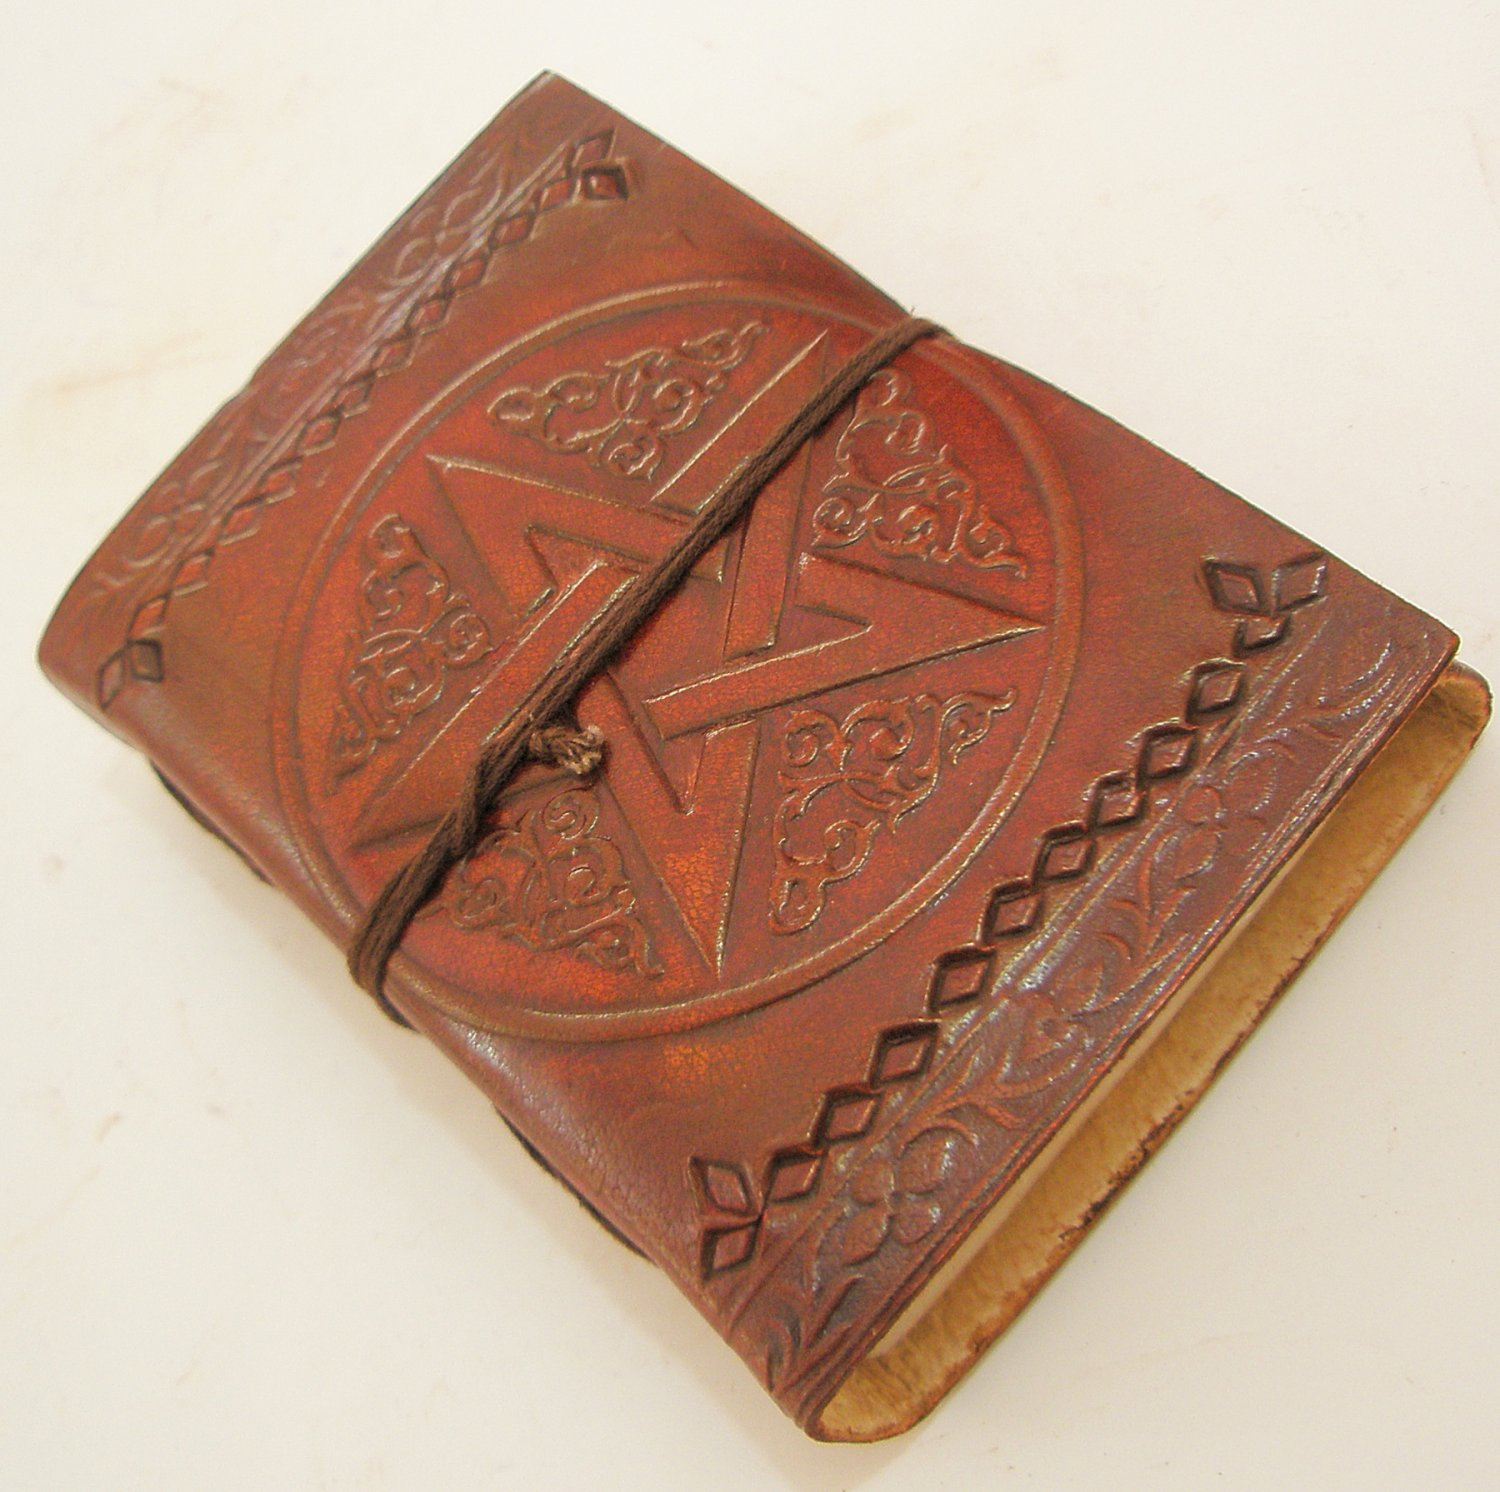 Handmade Leather Bound Journal Blank Diary Celtic Pentagram Book of Shadows Wicca Writing Notebook